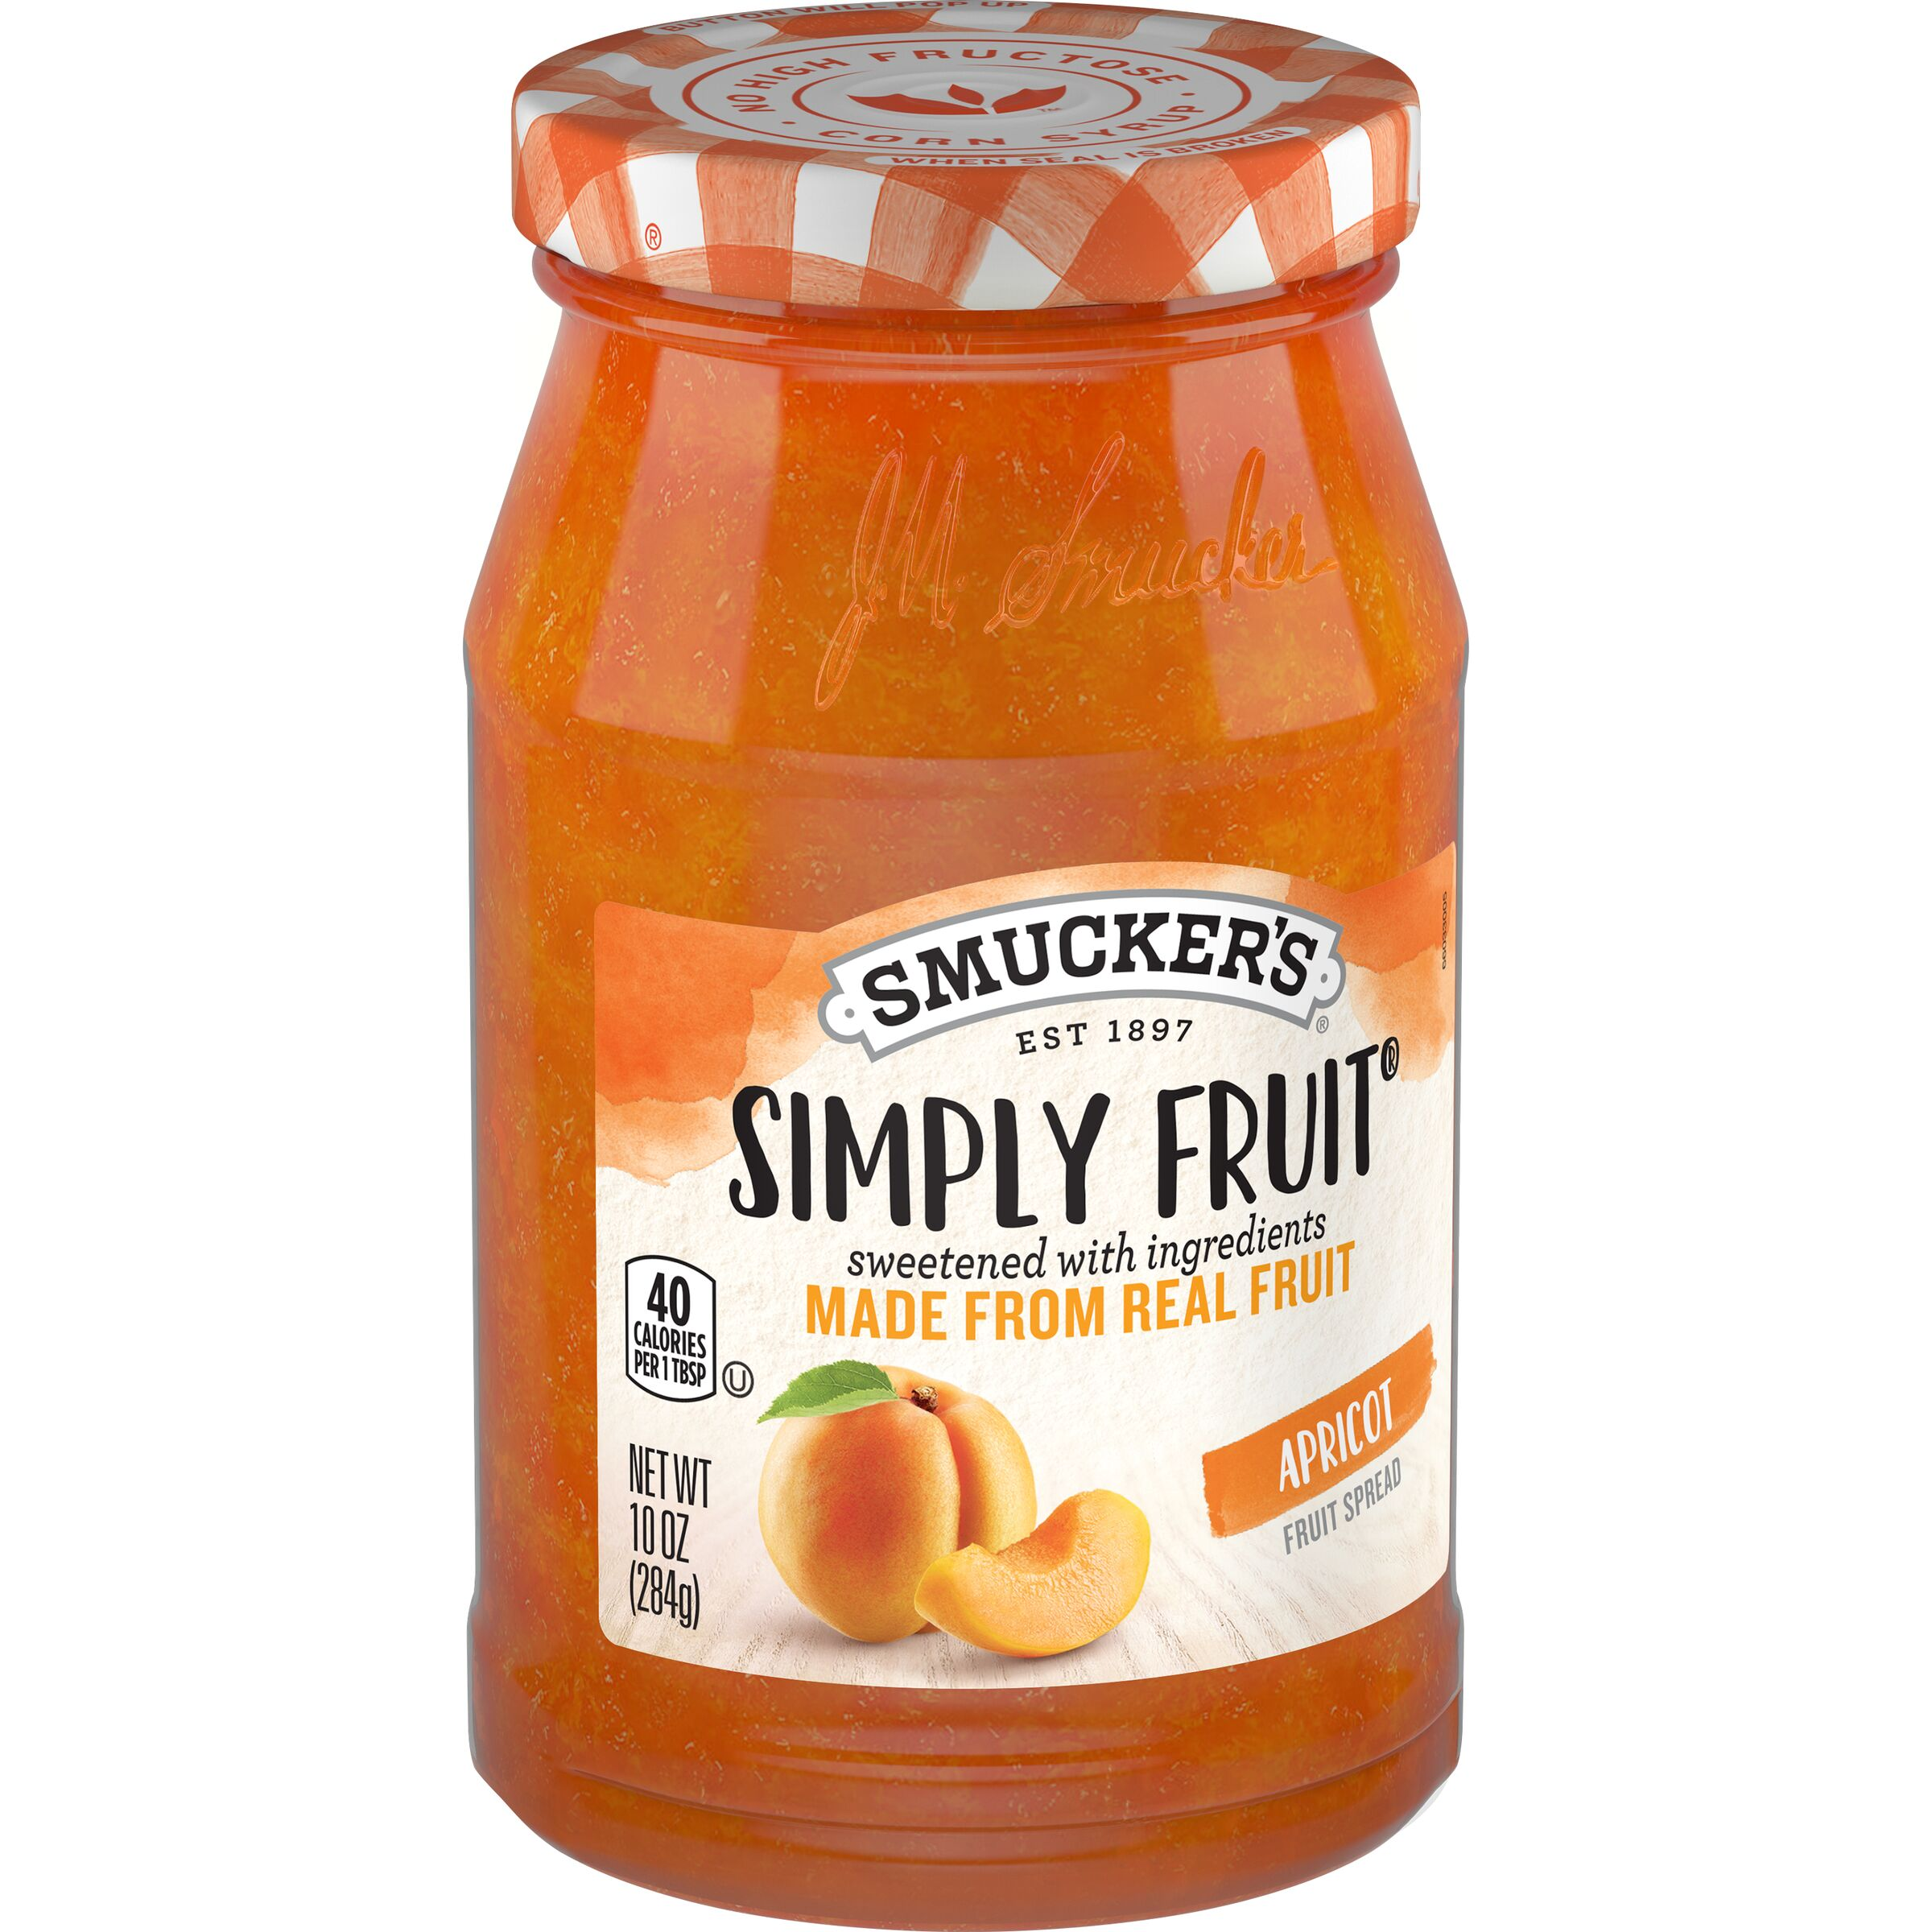 Smucker's Simply Fruit Apricot Spreadable Fruit